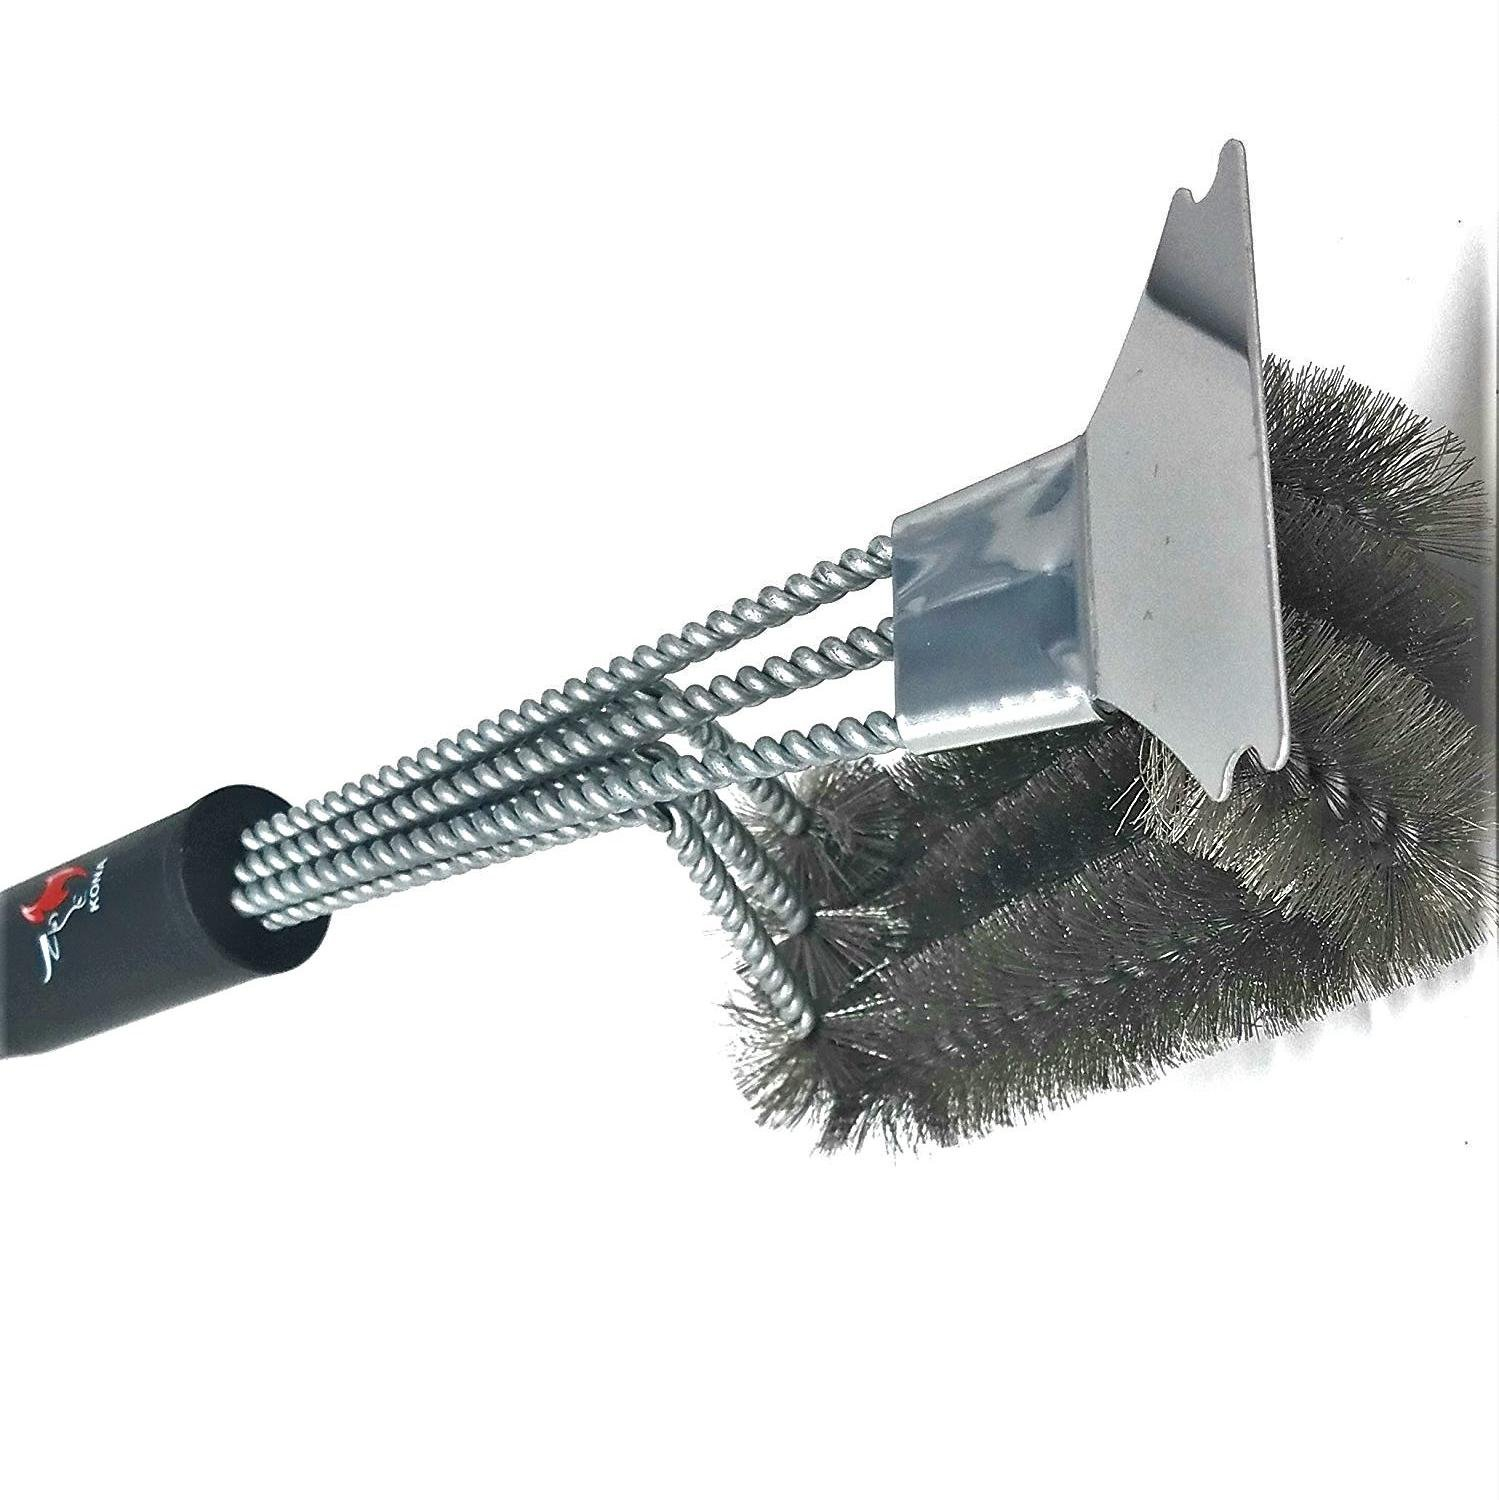 KONA Grill Brush And Scraper ~ New ~ 360° Clean Stainless Steel Barbecue Brush With Triple Head Scrubber And Cleaner ~ Safe For Porcelain, Ceramic, Steel, Iron ~ Great BBQ Tools Gift